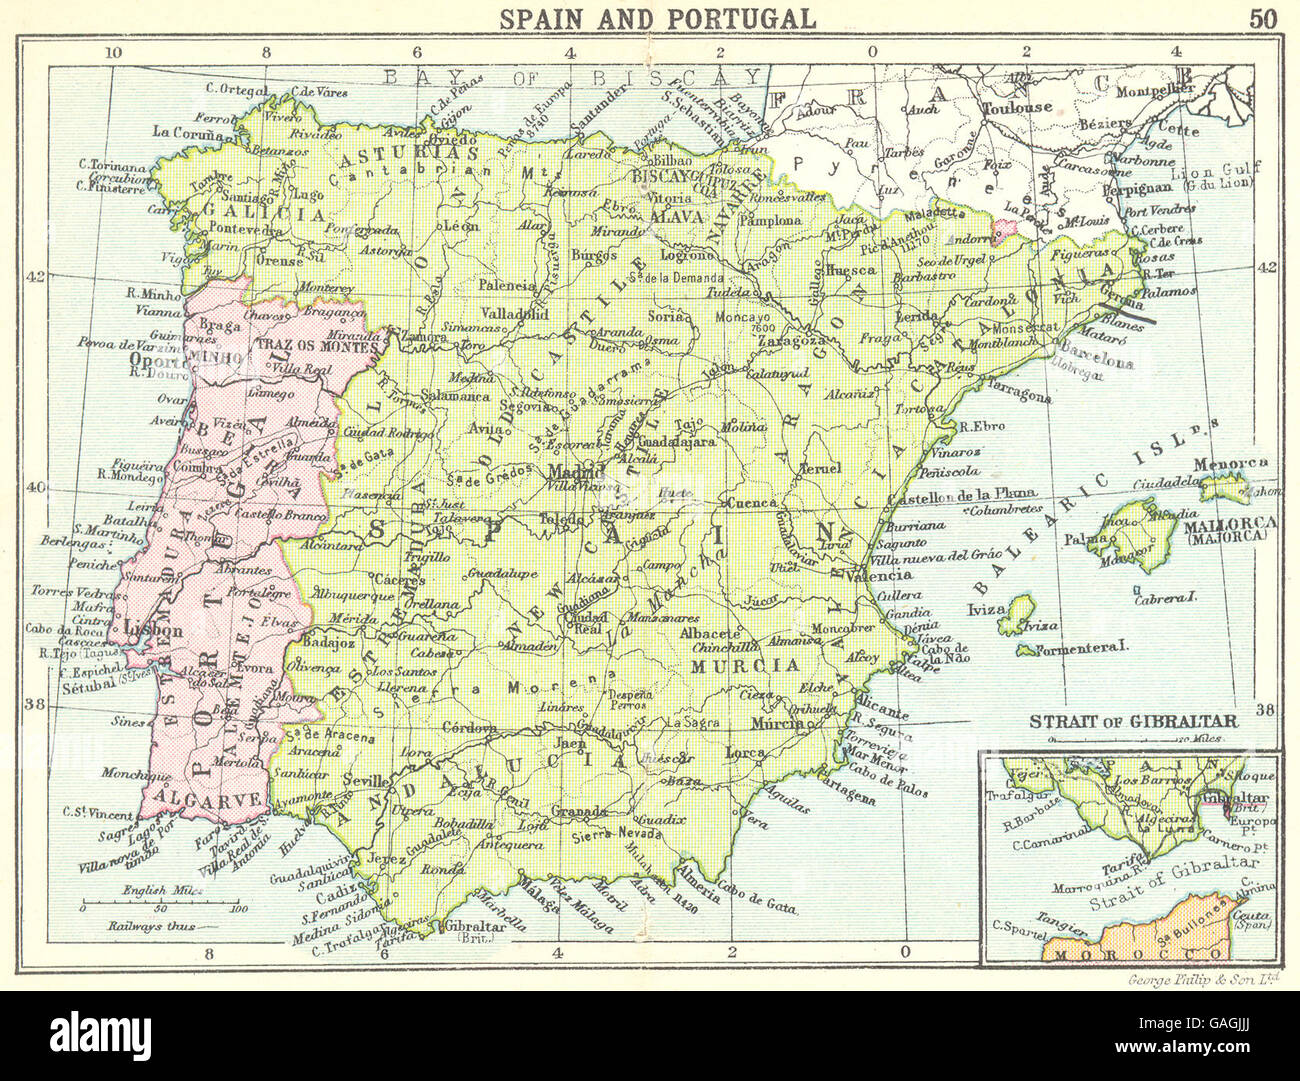 Spain Spain And Portugal Inset Map Of Strait Of Gibraltar Small